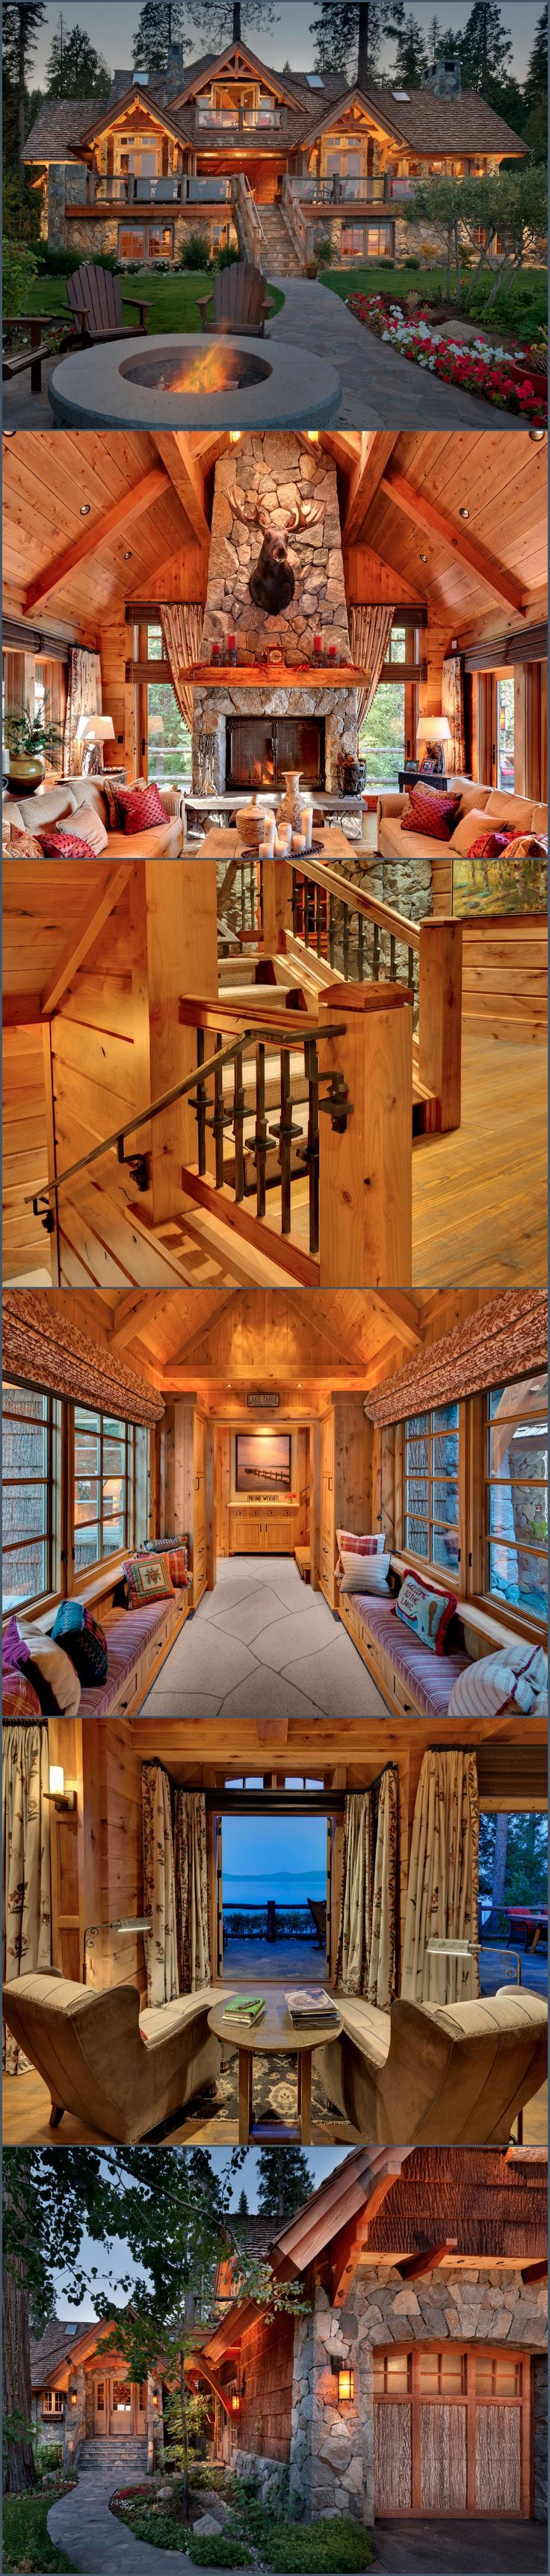 Love Log Cabins Old Tahoe House by OOA Design - Style Estate - YES. YES TO ALL OF THIS. ALL THE THINGS